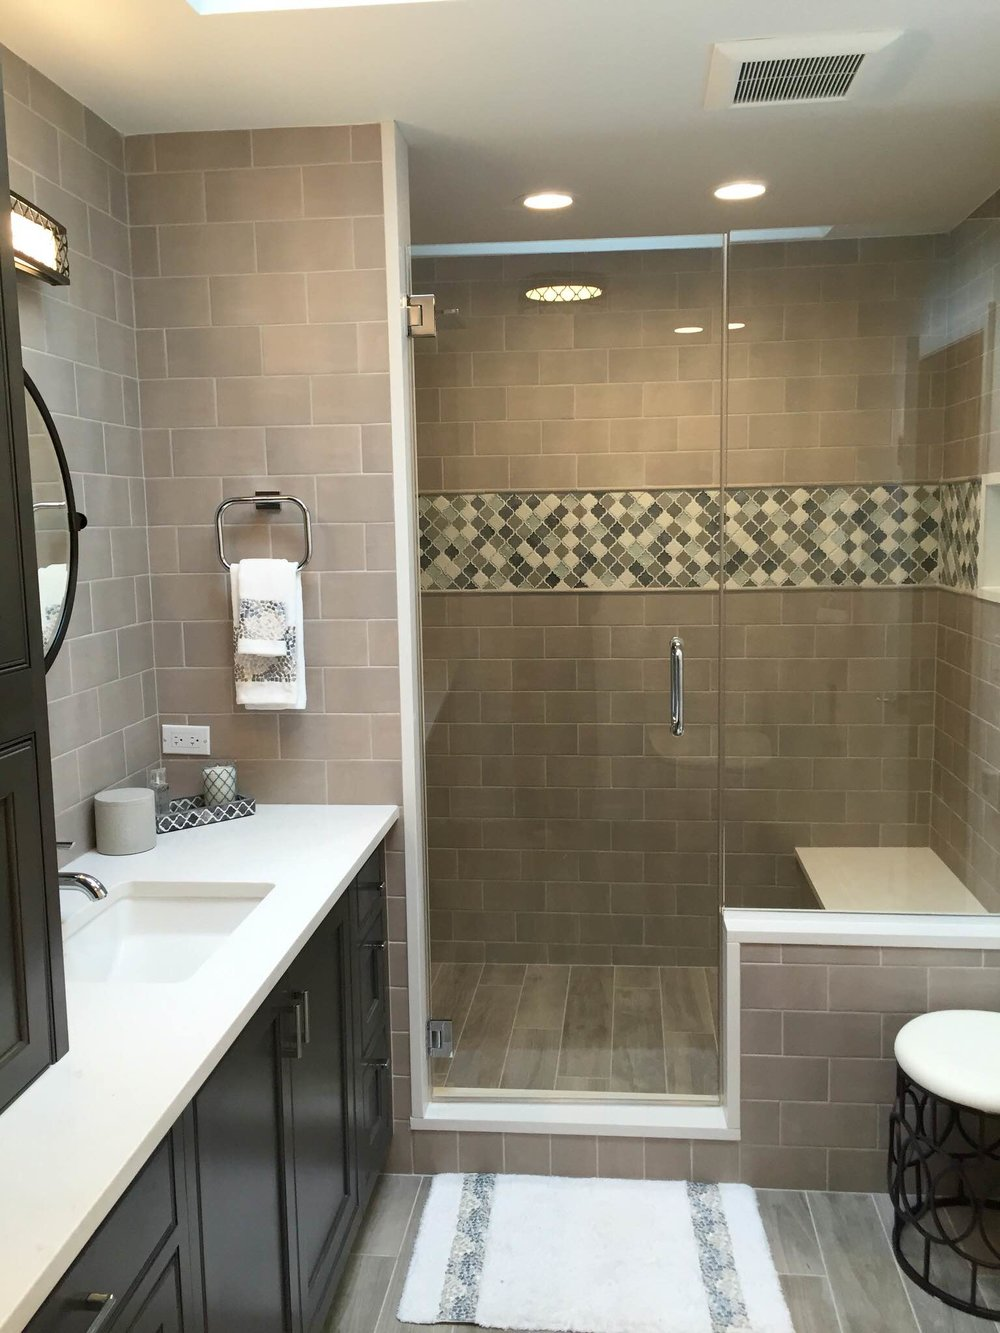 The new bathroom features a warmer color palette, heated floor, and an expanded shower with a bench.